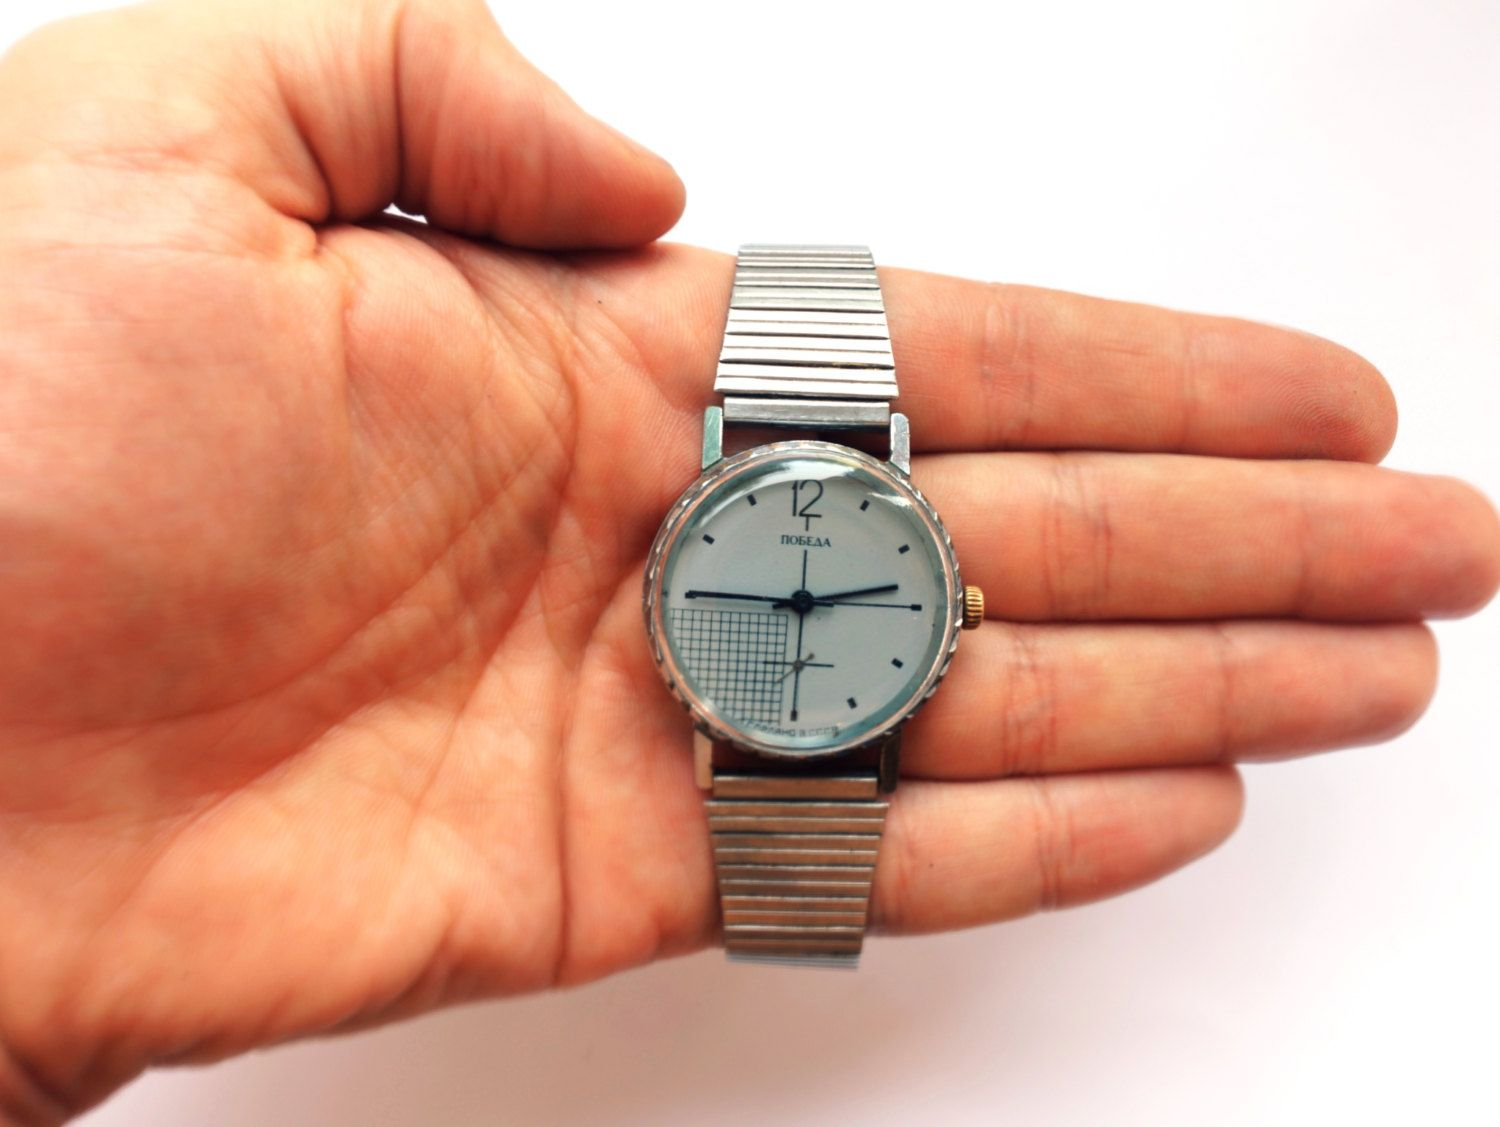 Rare Vintage Soviet Watch Mechanical Pobeda. This is beautiful unusual watch with awesome dial and original steel bracelet. Mens mechanical watch in